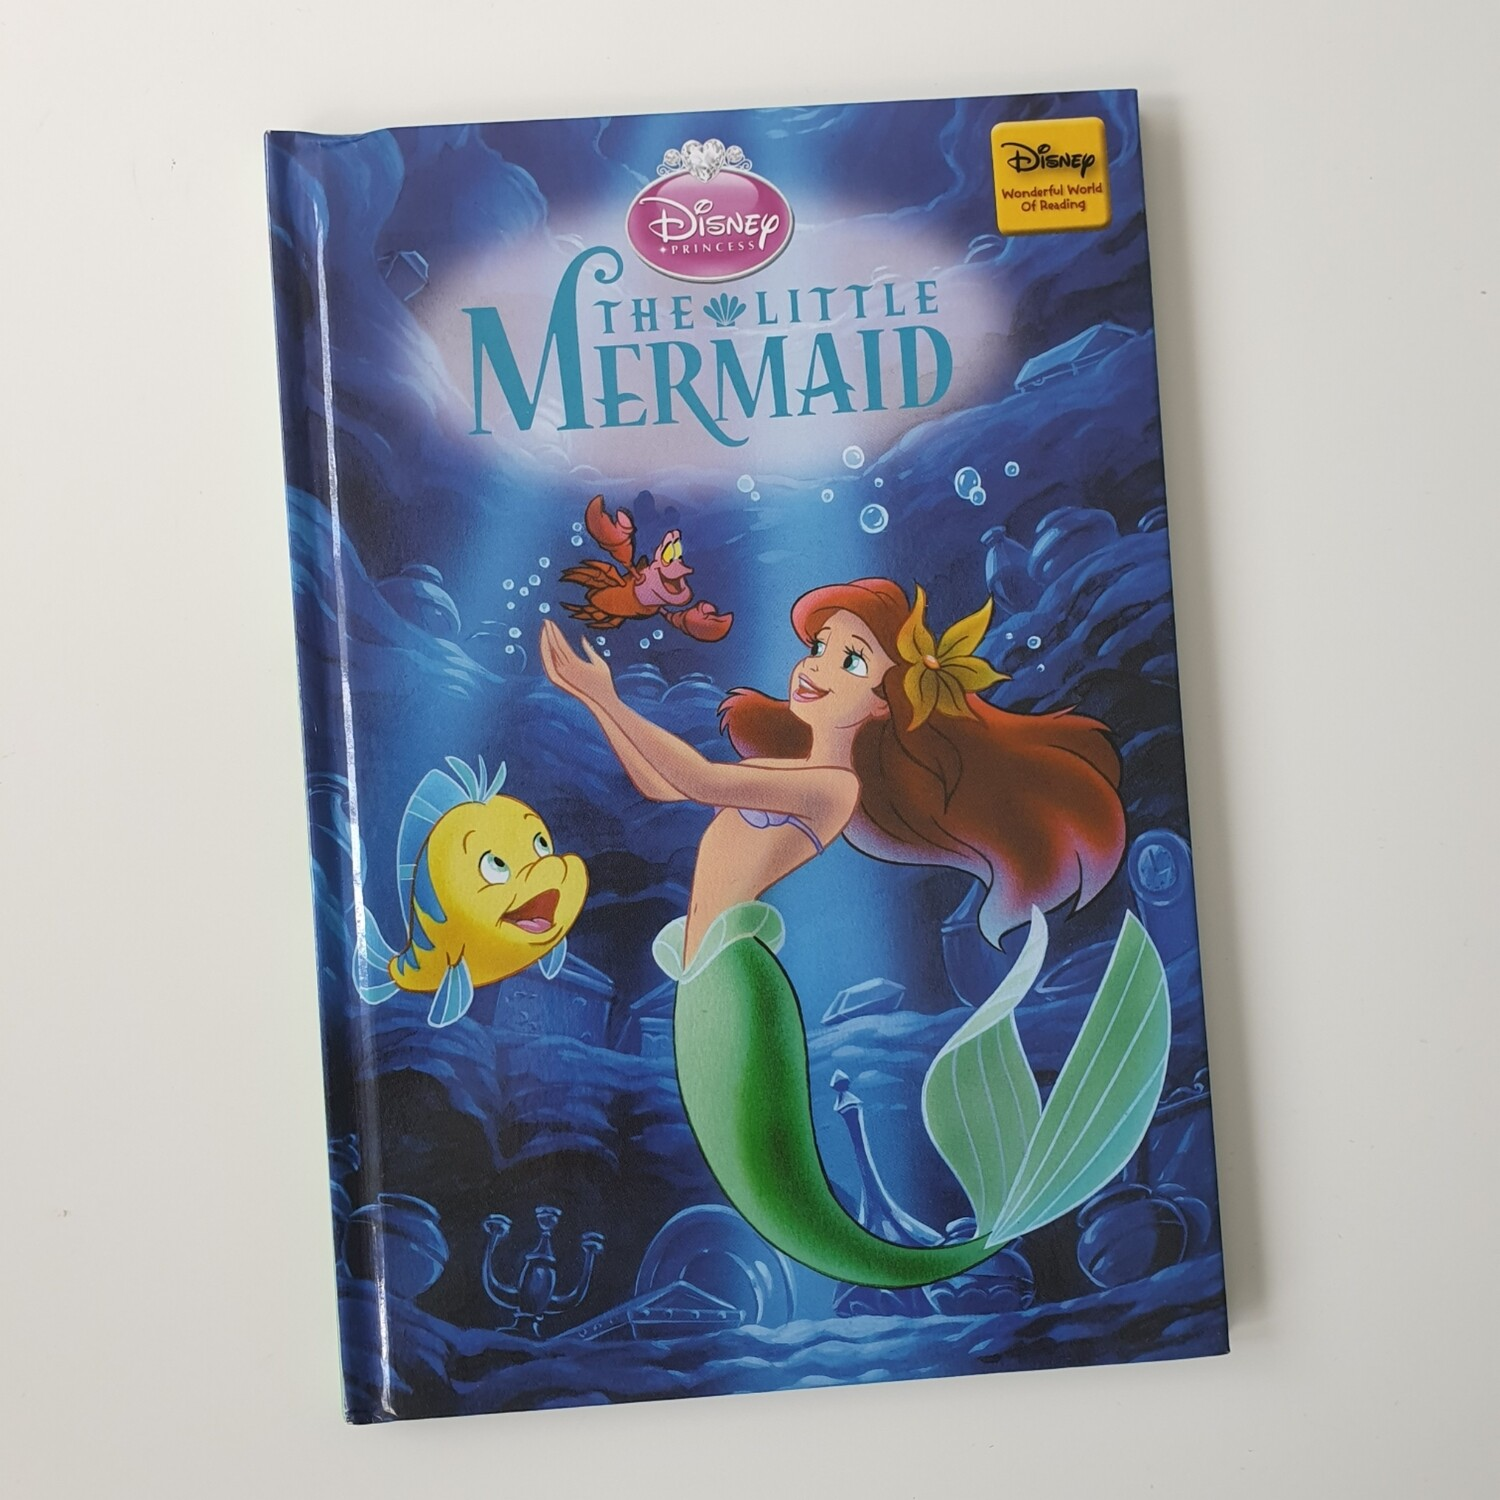 Little Mermaid Notebooks - choose from a variety of covers